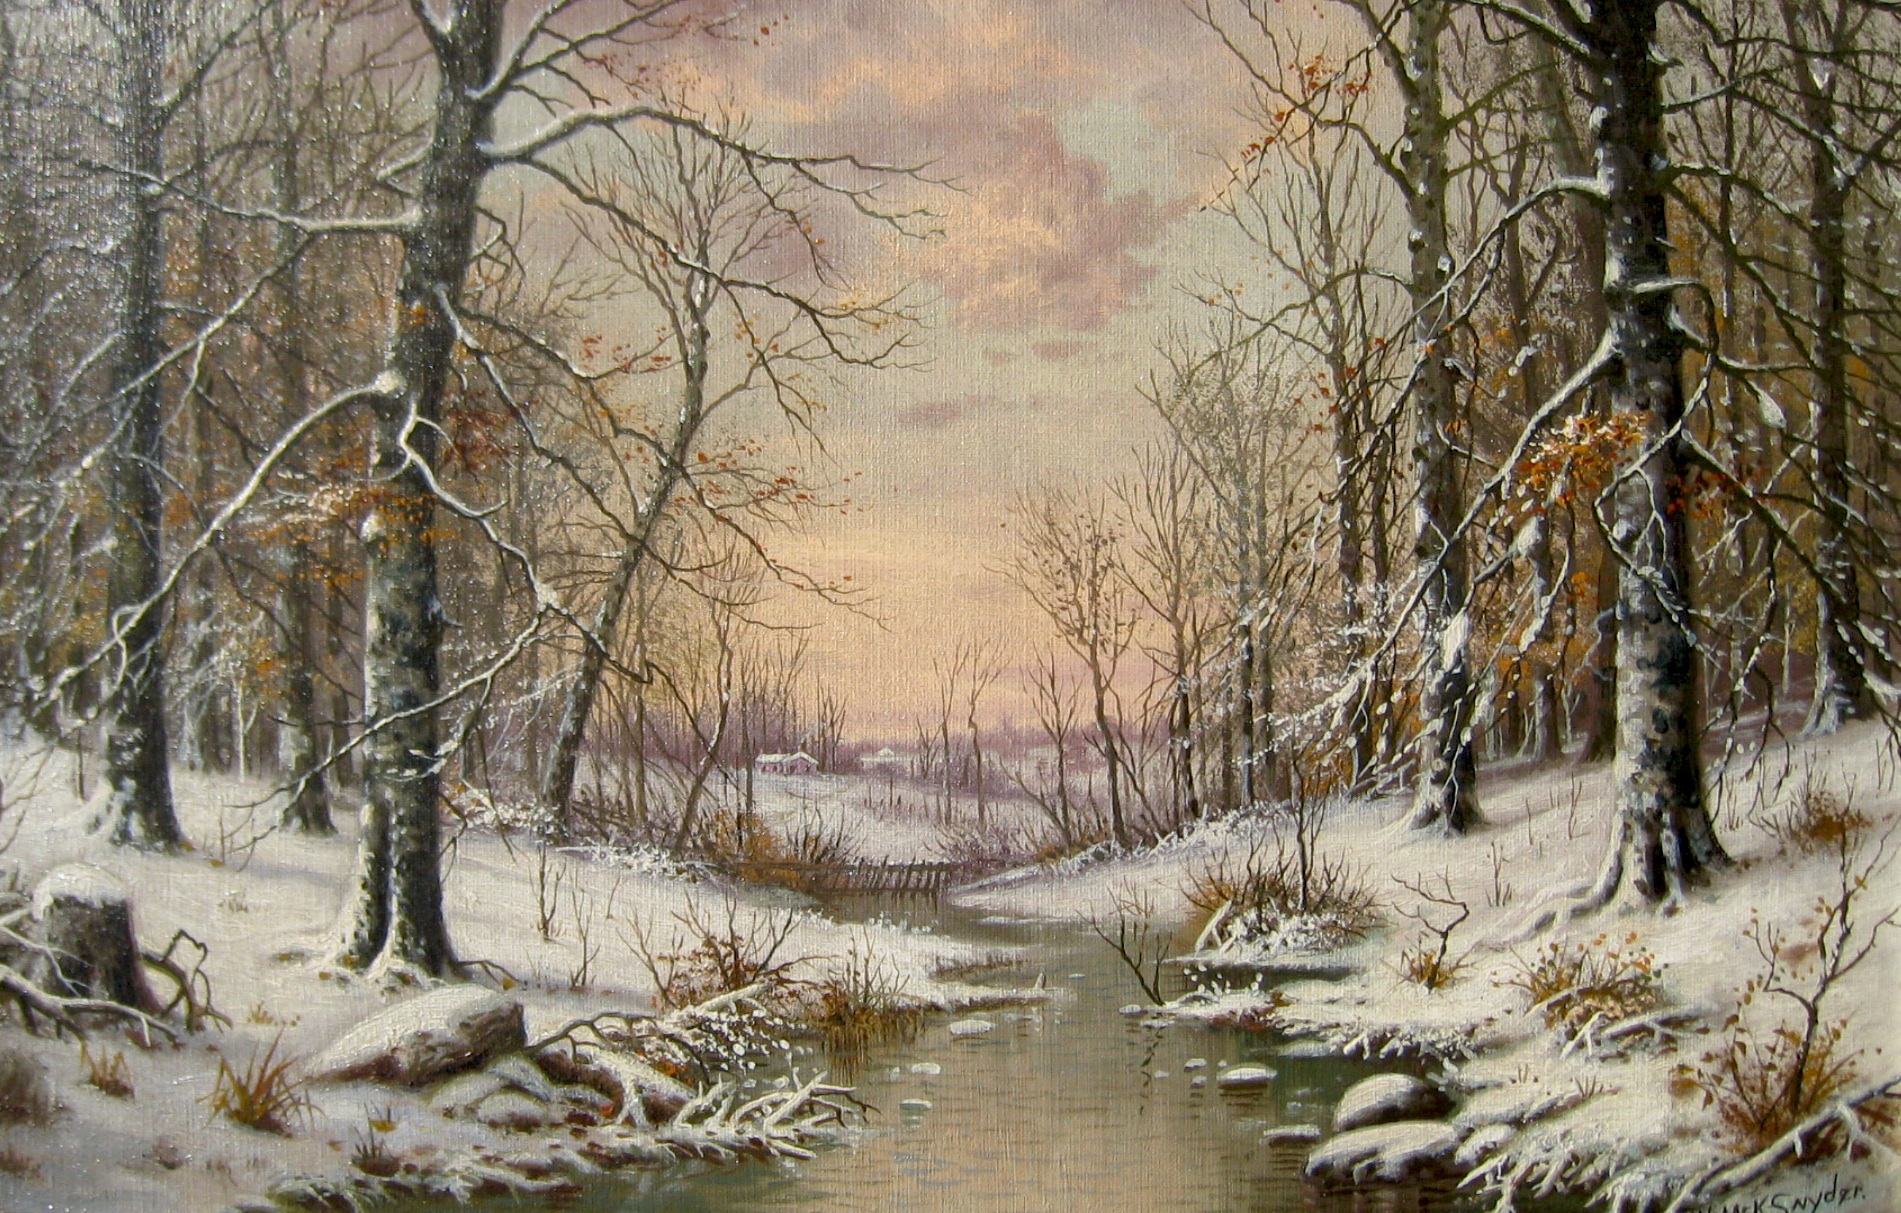 snyder-winter-cropped-2a